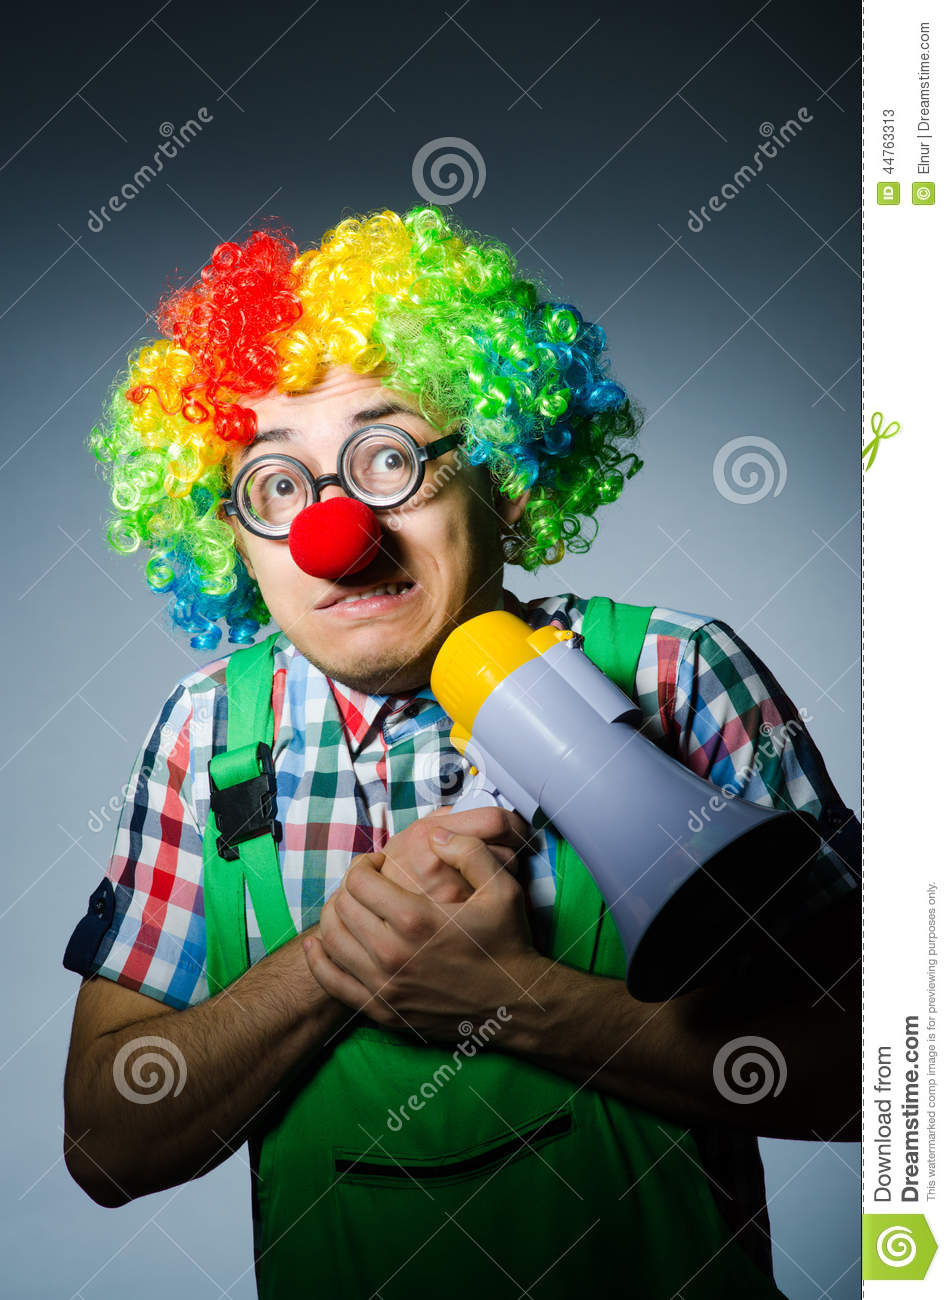 Clown mit loudspealer